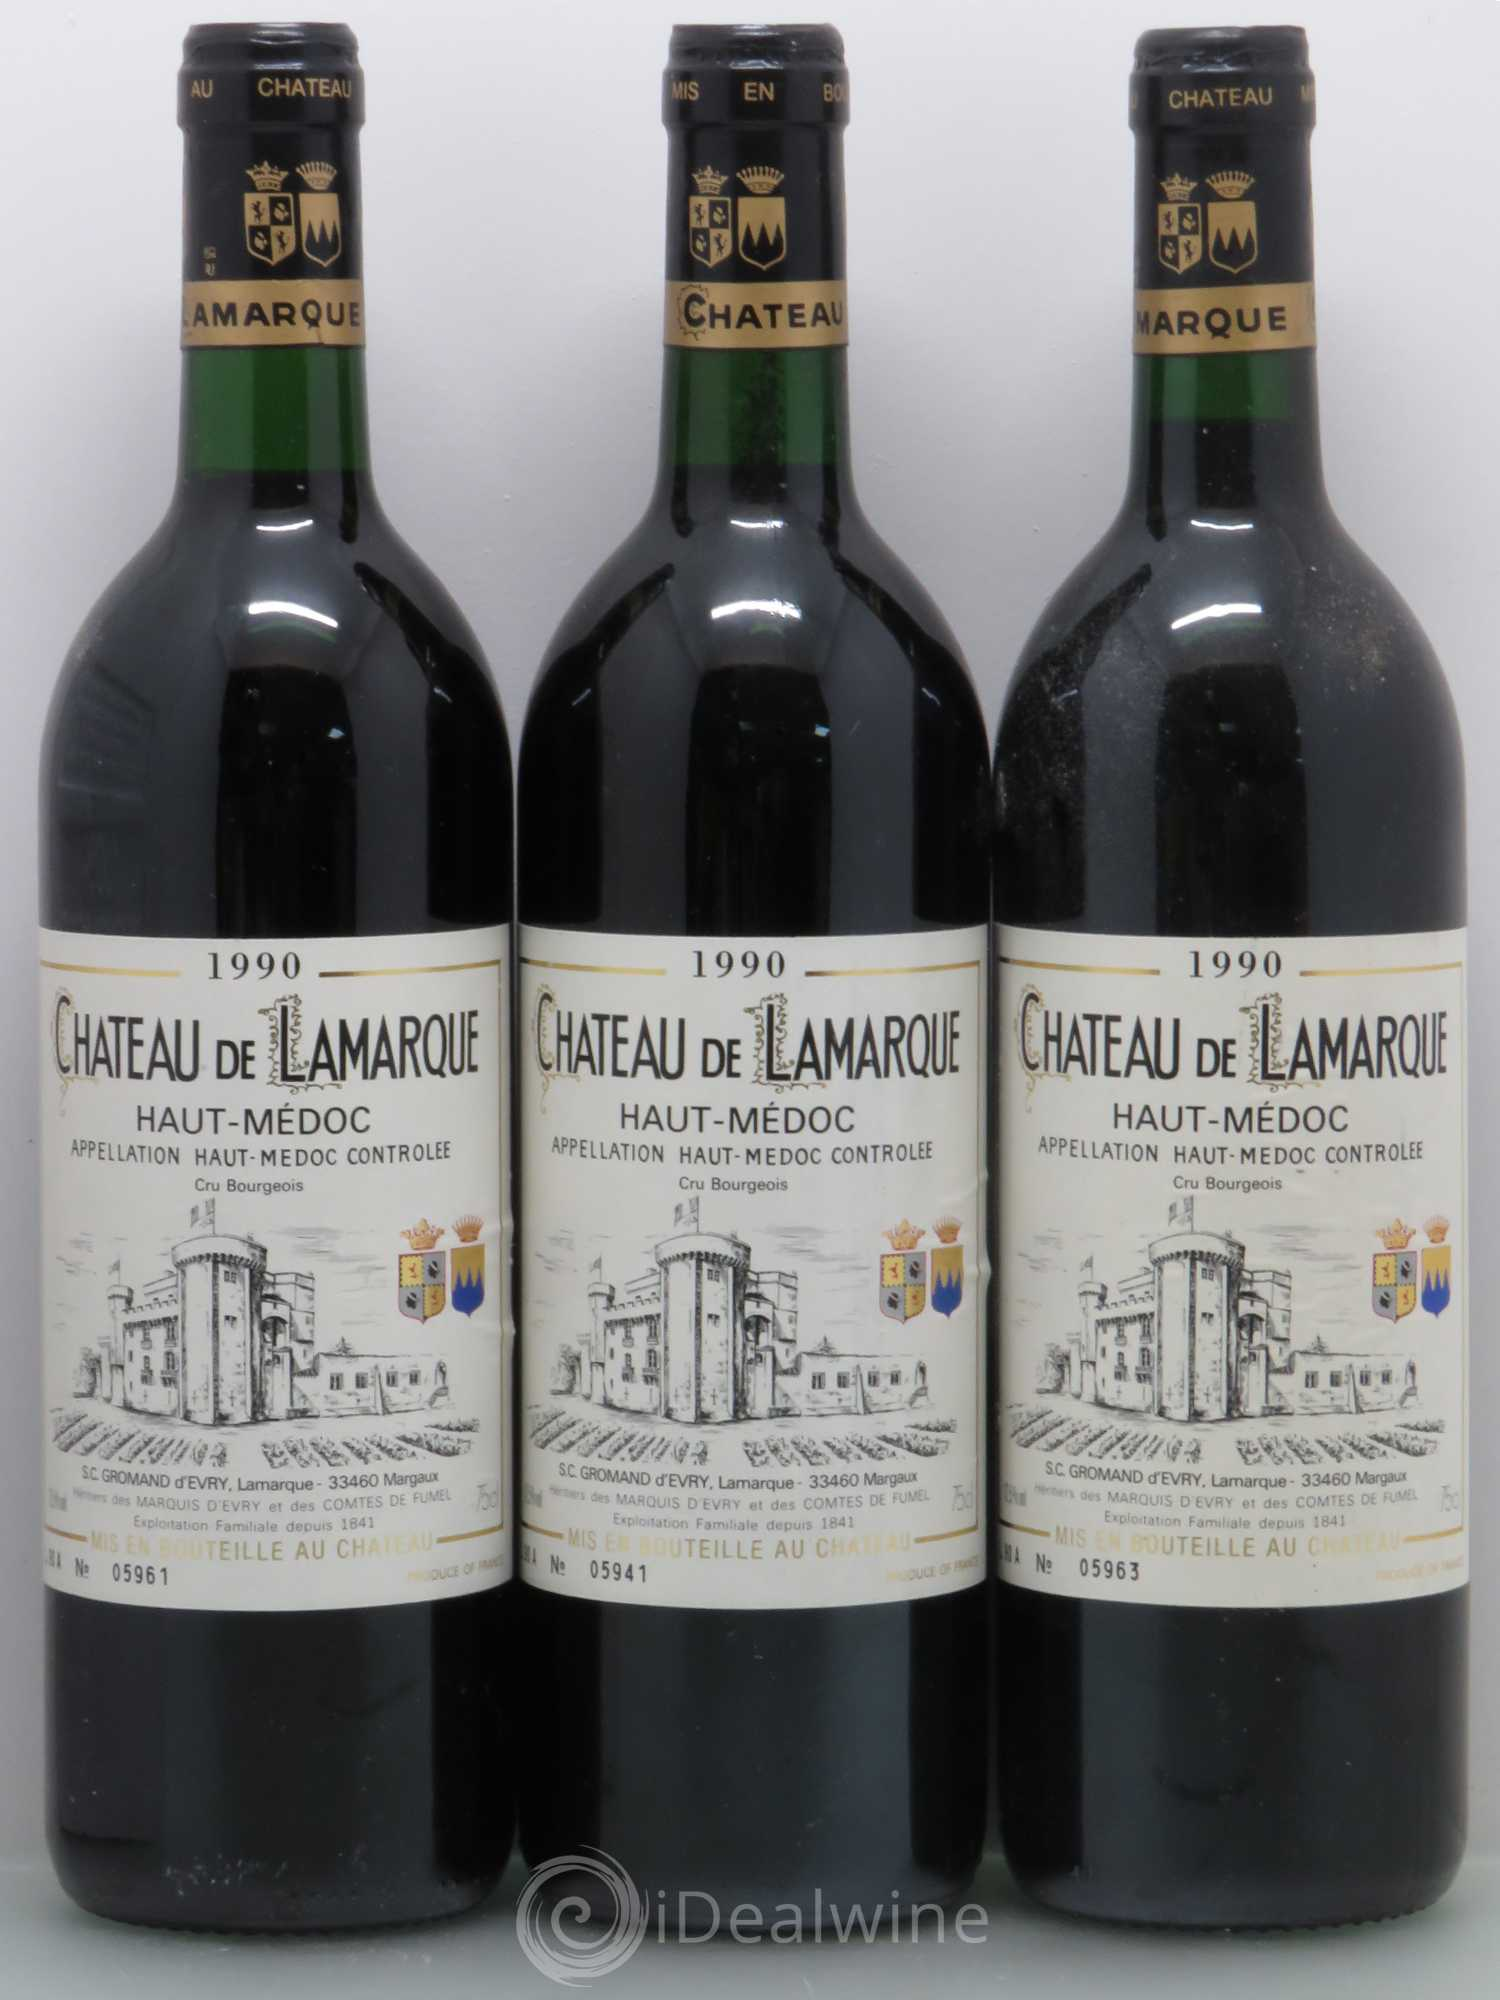 Buy ch teau de lamarque cru bourgeois 1990 lot 6086 for Buy chateaubriand